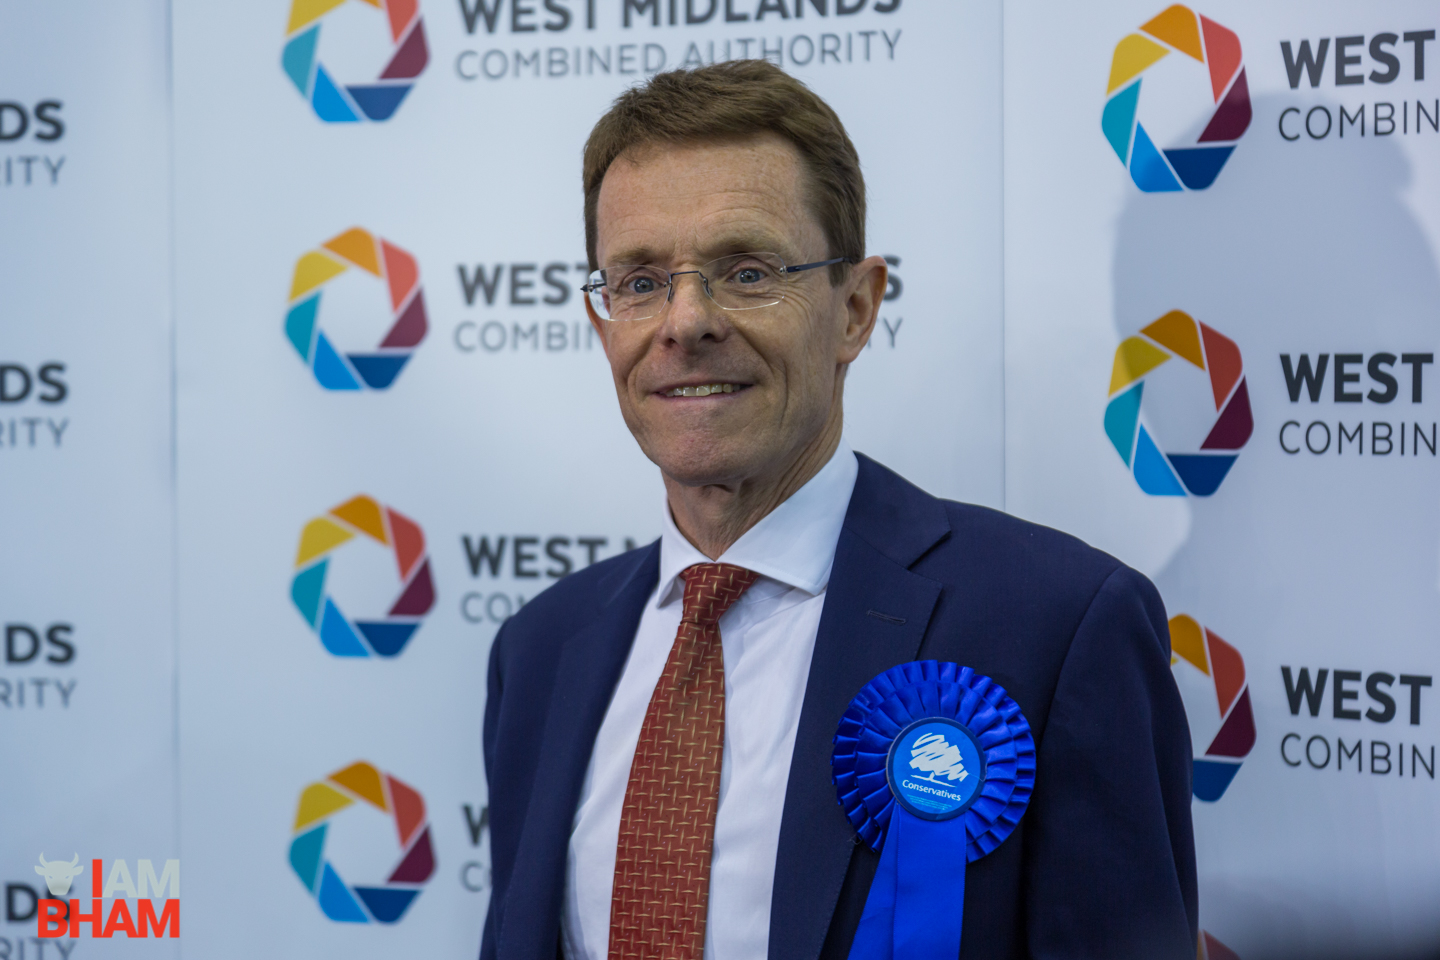 Conservative candidate Andy Street has been elected the first-ever West Midlands Mayor